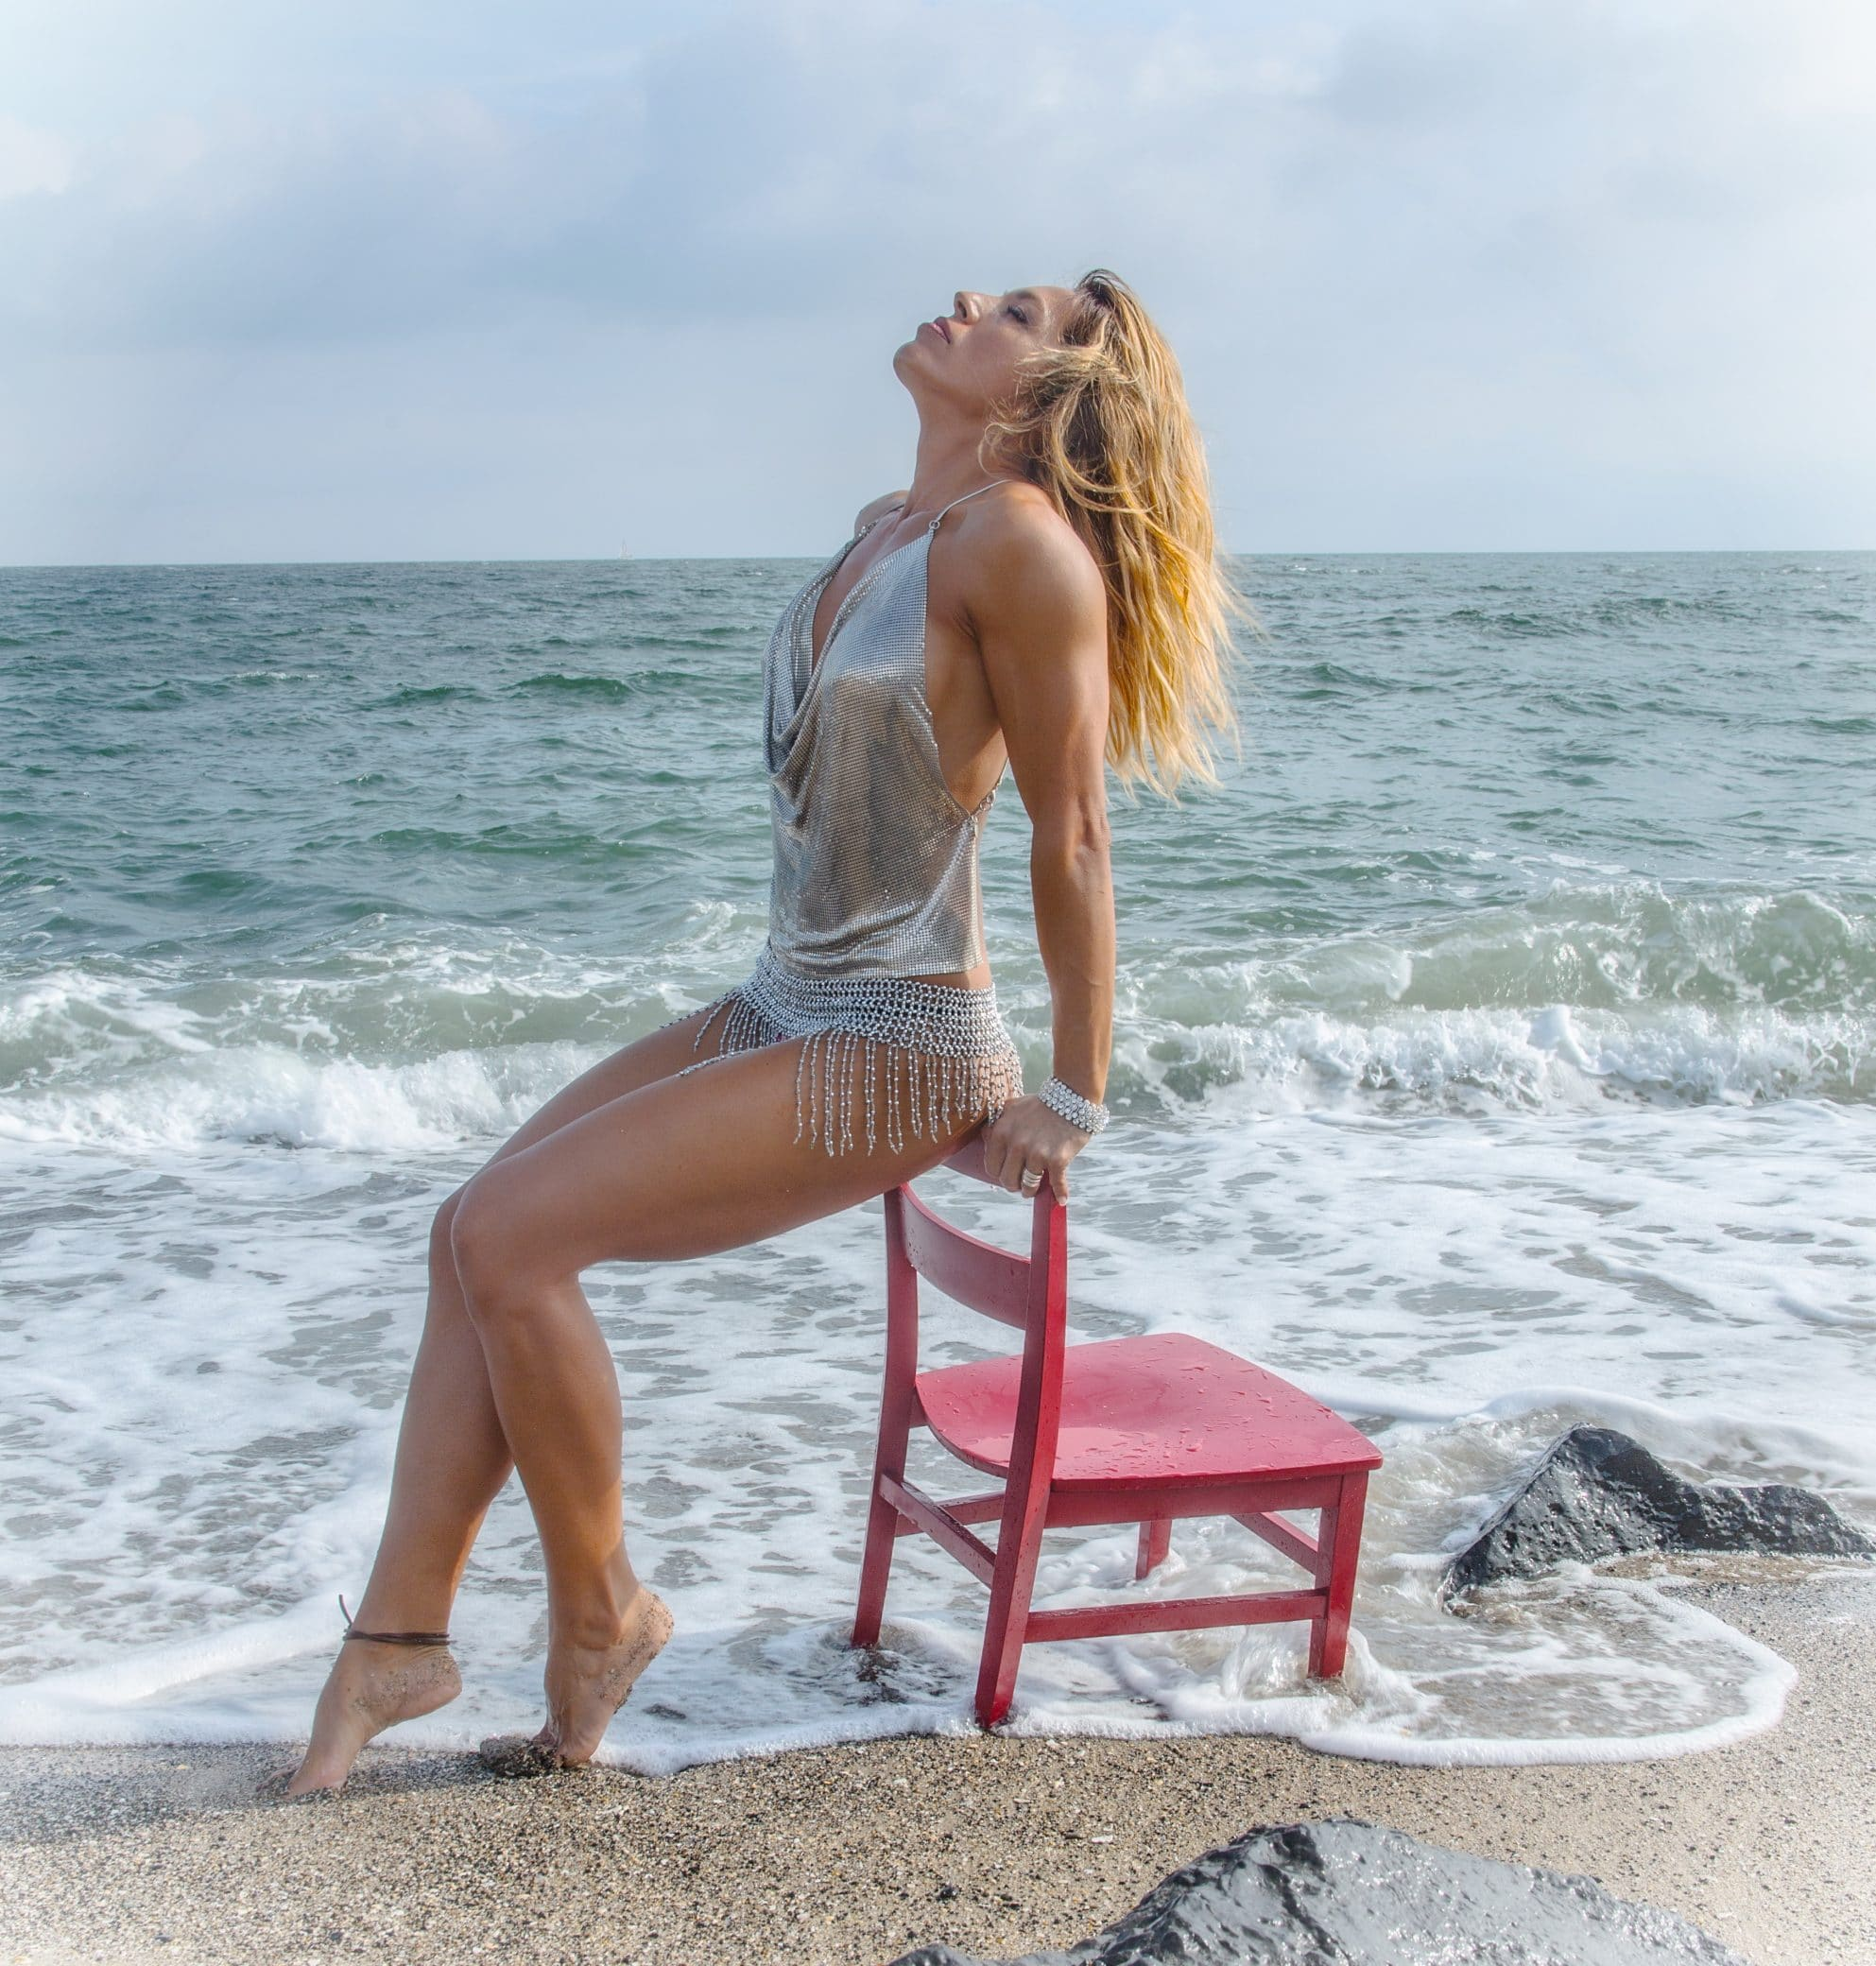 Beautiful blonde model on the beach wearing a silver camisole and a fringed pearls skirt sitting on a red wooden chait showing her long sexy legs and feet